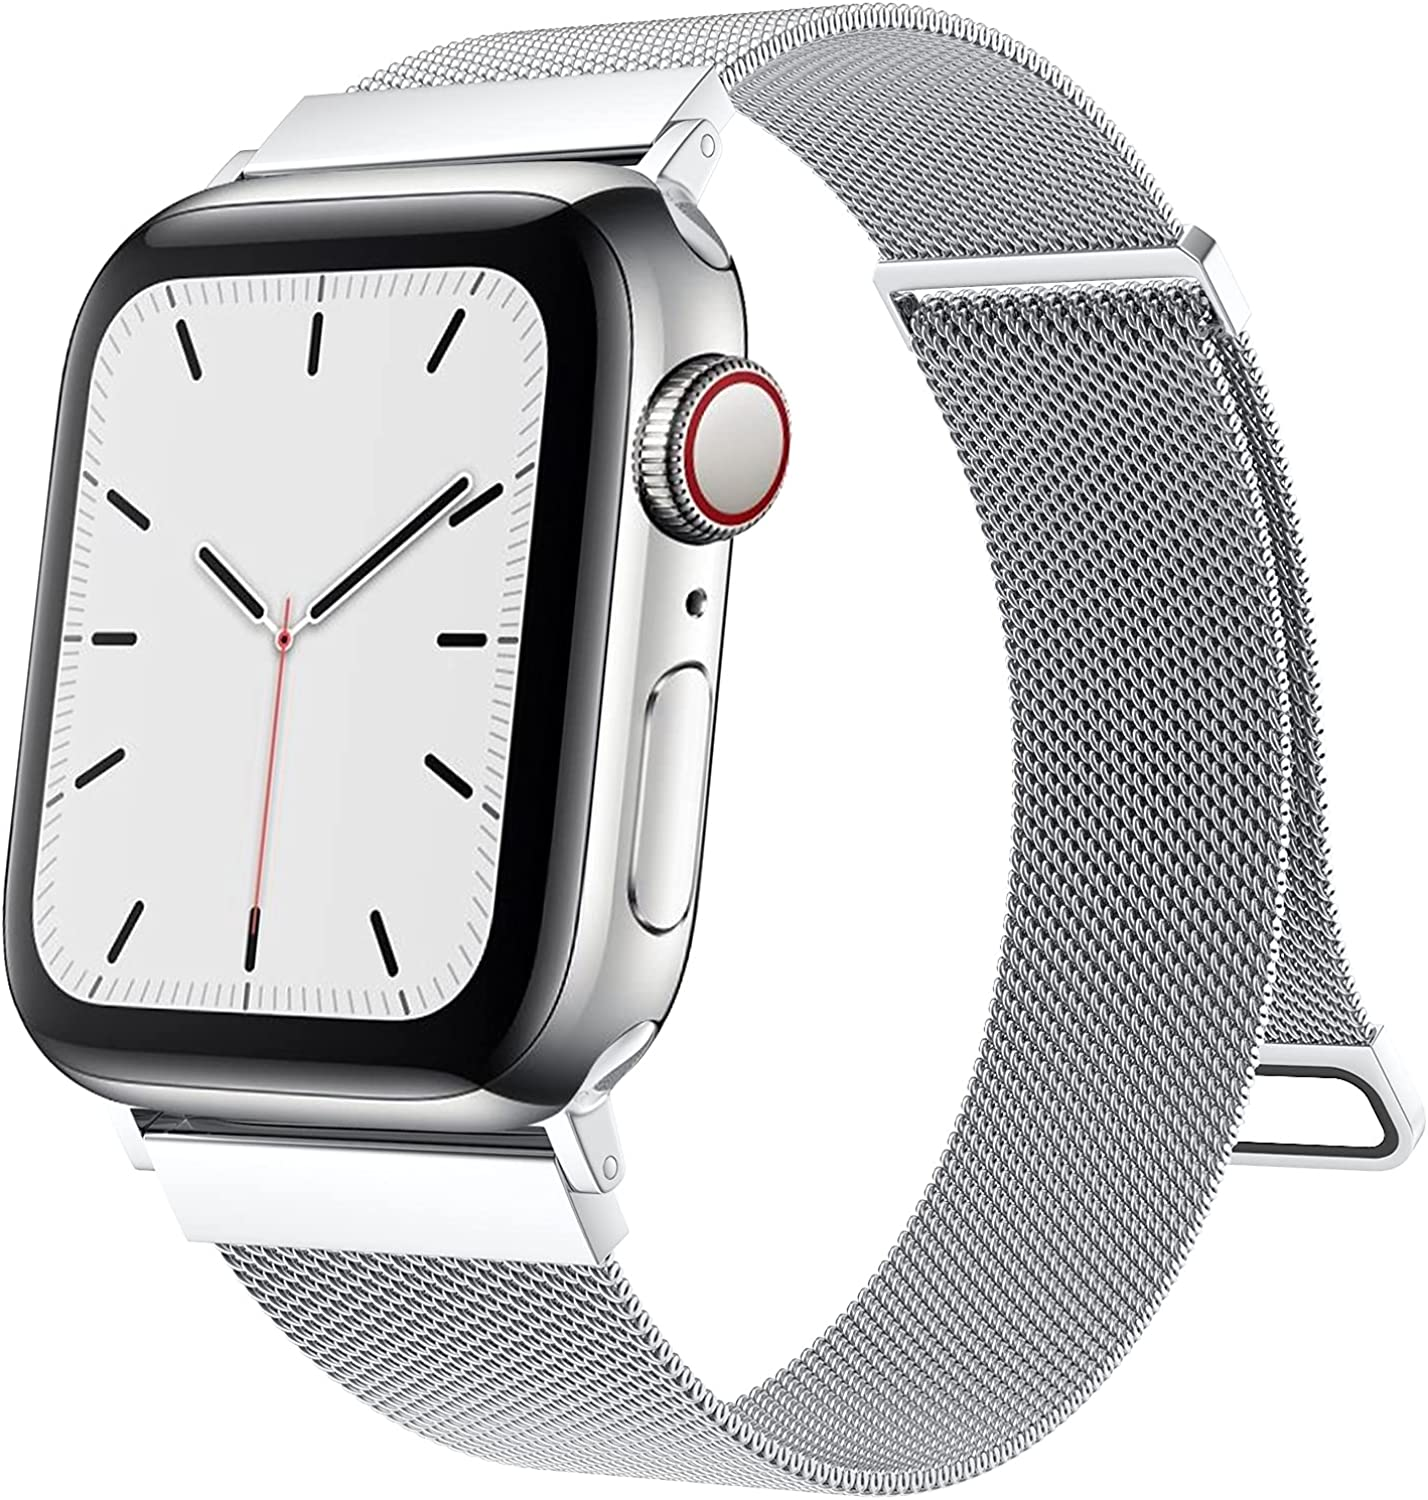 Cigamoya Compatible with Apple Watch Band 38mm 40mm 41mm 42mm 44mm 45mm Women Men, Super Adjustable Mesh Stainless Steel Wristbands with Strong Magnetic Clasp for iWatch Bands Series 7/6/SE/5/4/3/2/1